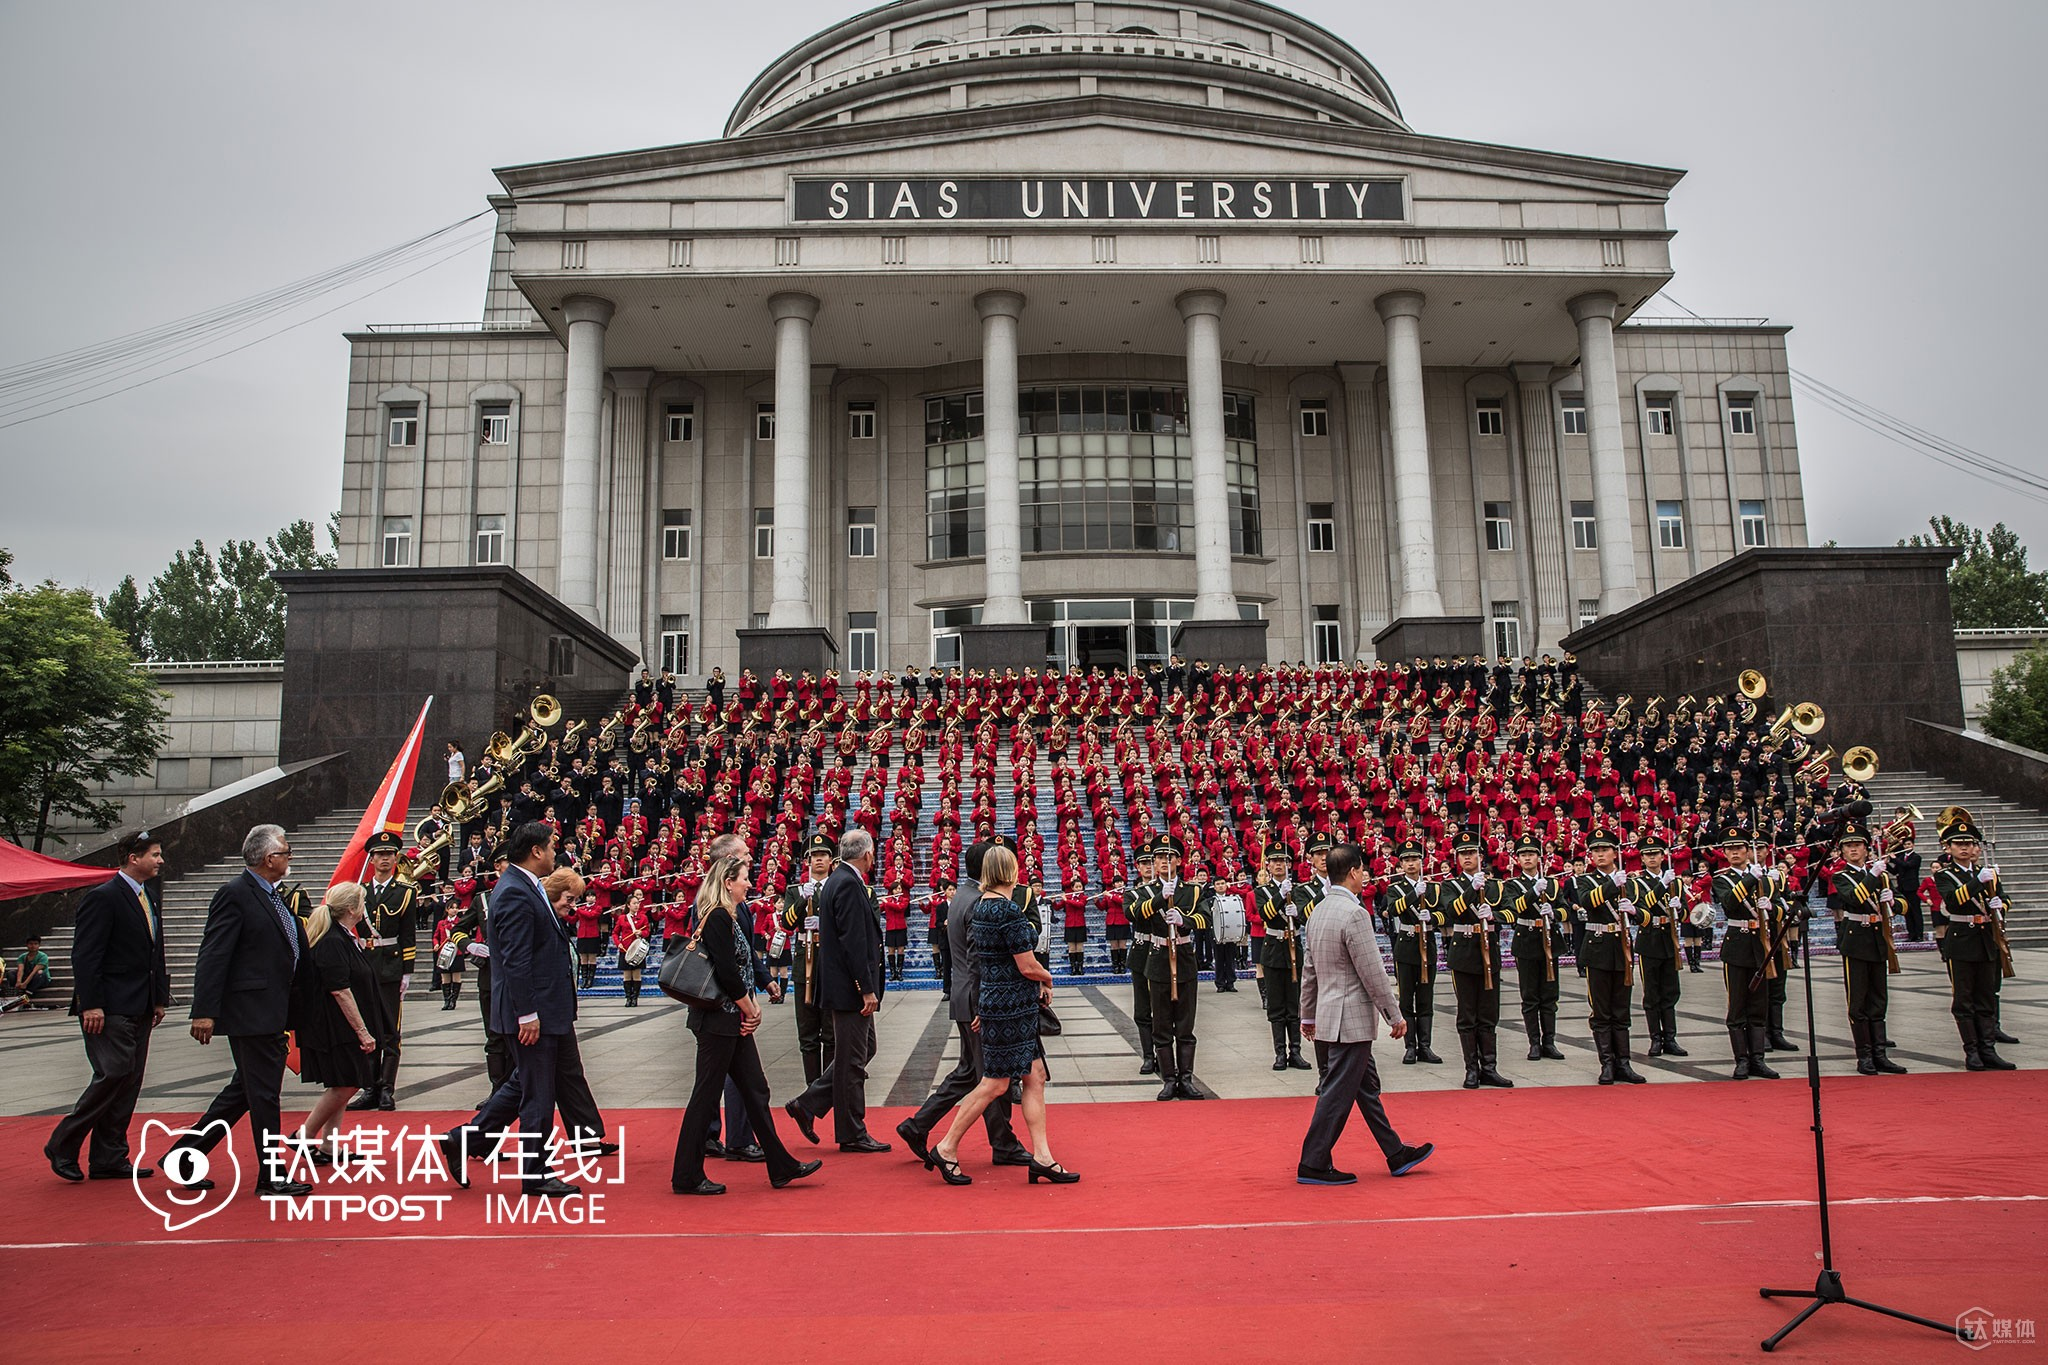 """At the welcome ceremony in campus, honor guards and symphony orchestra of the university were all called out, and reviewed by the delegation, a typical but a little bit old-fashioned way to welcome foreign guests in China. While Silicon Valley mayors were surprised at the warm welcome ceremony, young entrepreneurs from Silicon Valley who travelled along with the delegation, however, found the ceremony amusing. """"That is crazy"""", they exclaimed."""